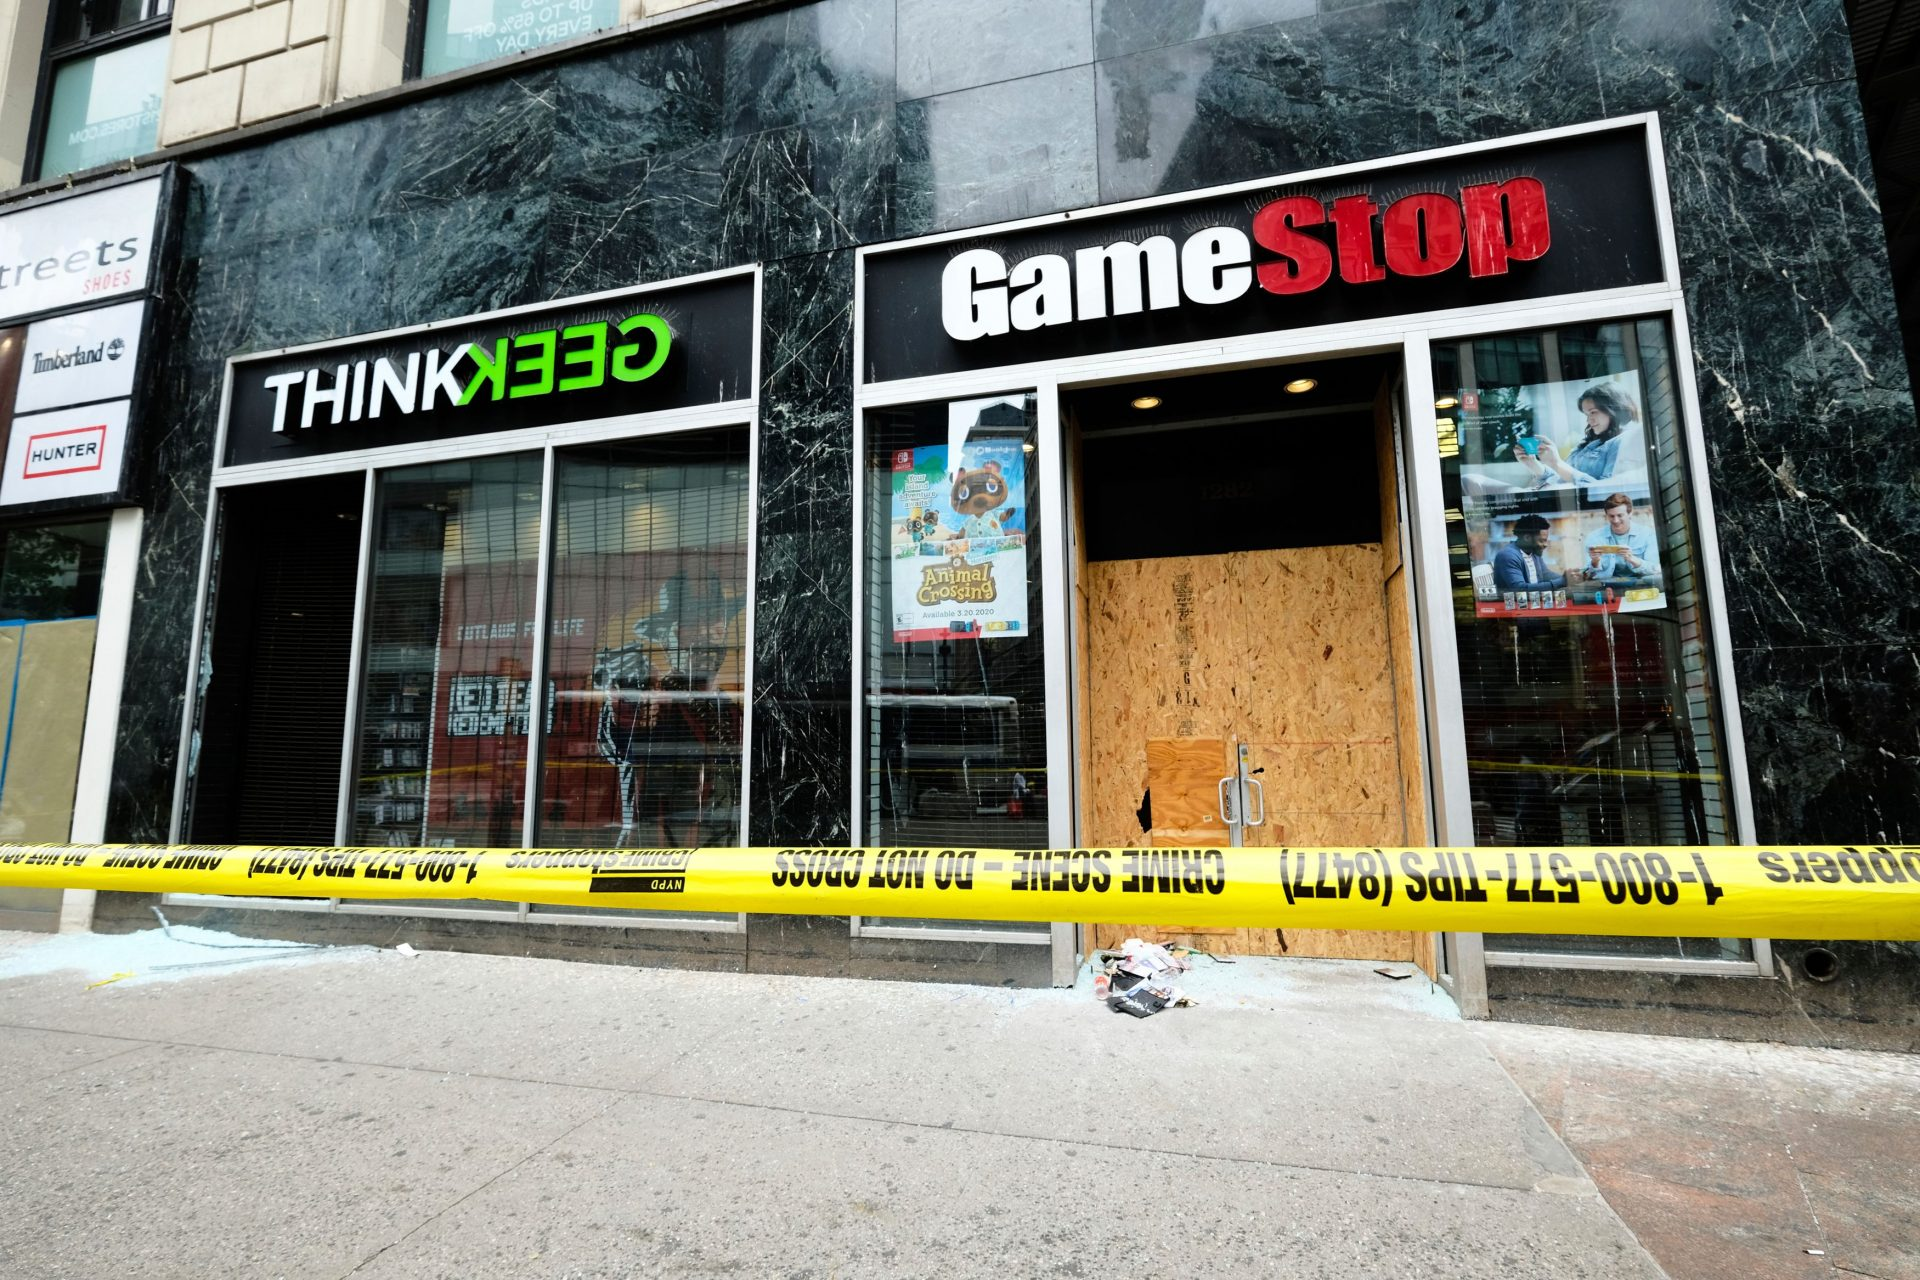 Mandatory Credit: Photo by Evan Agostini/Invision/AP/Shutterstock (10667337b)ThinkGeek and GameStop stores on Broadway show signs of damage after a night of looting and and social unrest following George Floyd police brutality protests in Manhattan, in New YorkNYC Looting Aftermath, New York, United States - 02 Jun 2020.